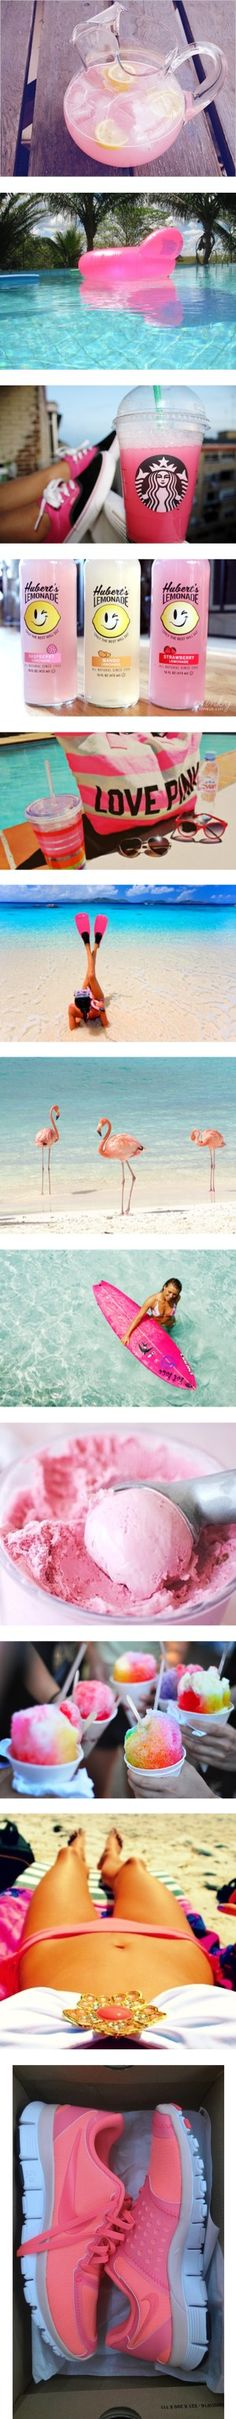 """SUMMER PiCTURES // ♥"" by the-tip-girly ❤ liked on Polyvore"